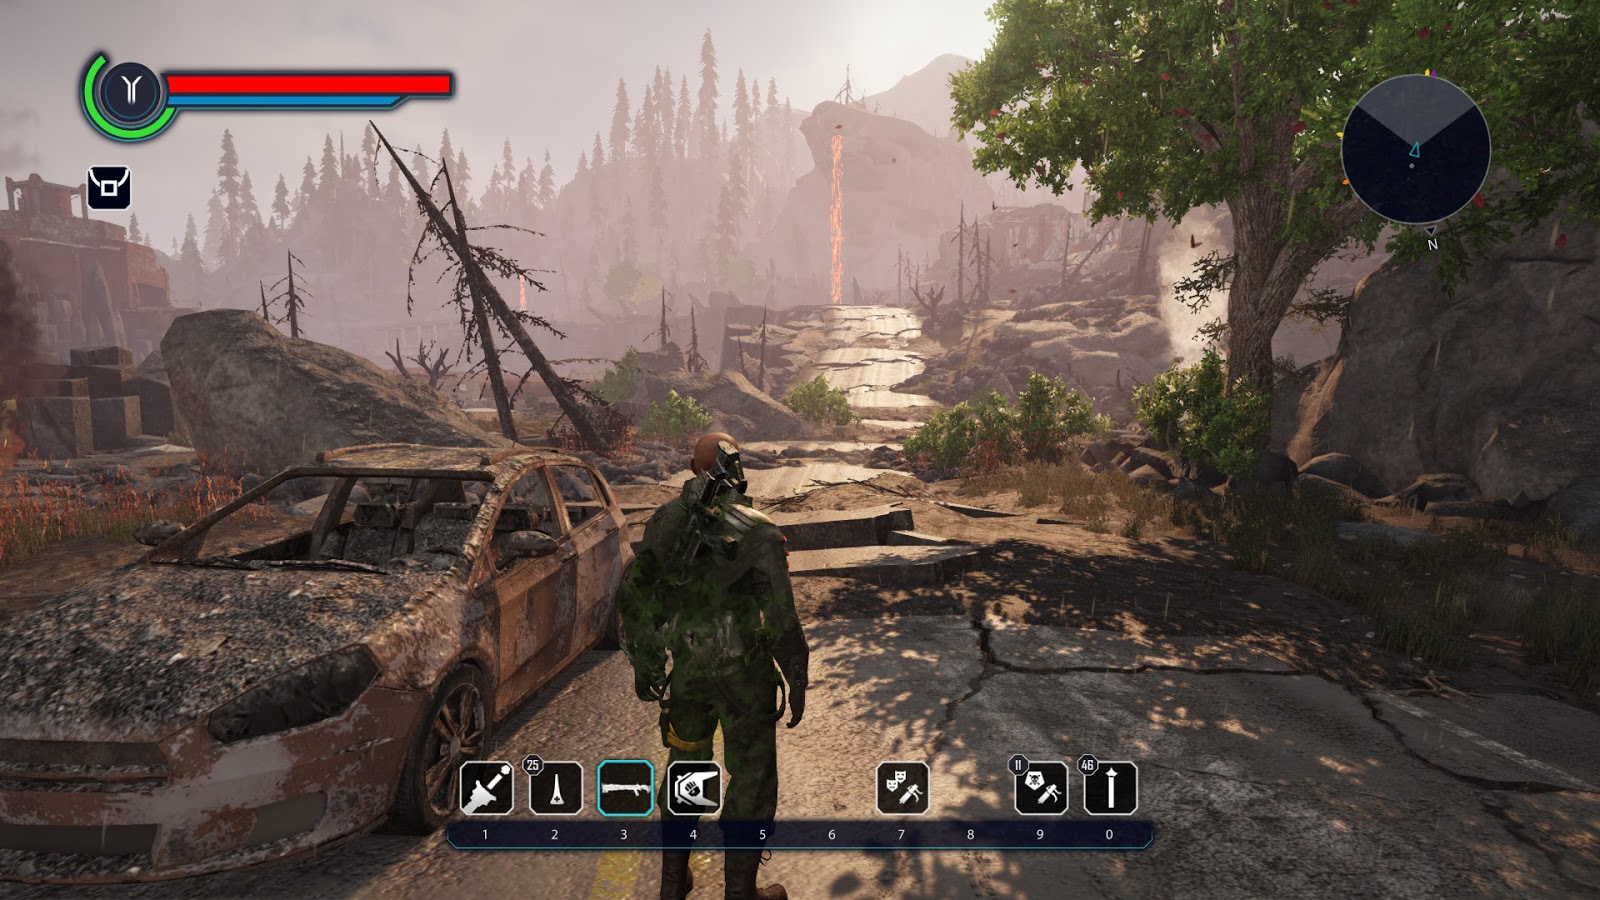 The Nocturnal Rambler: Why Elex is Better than Skyrim and